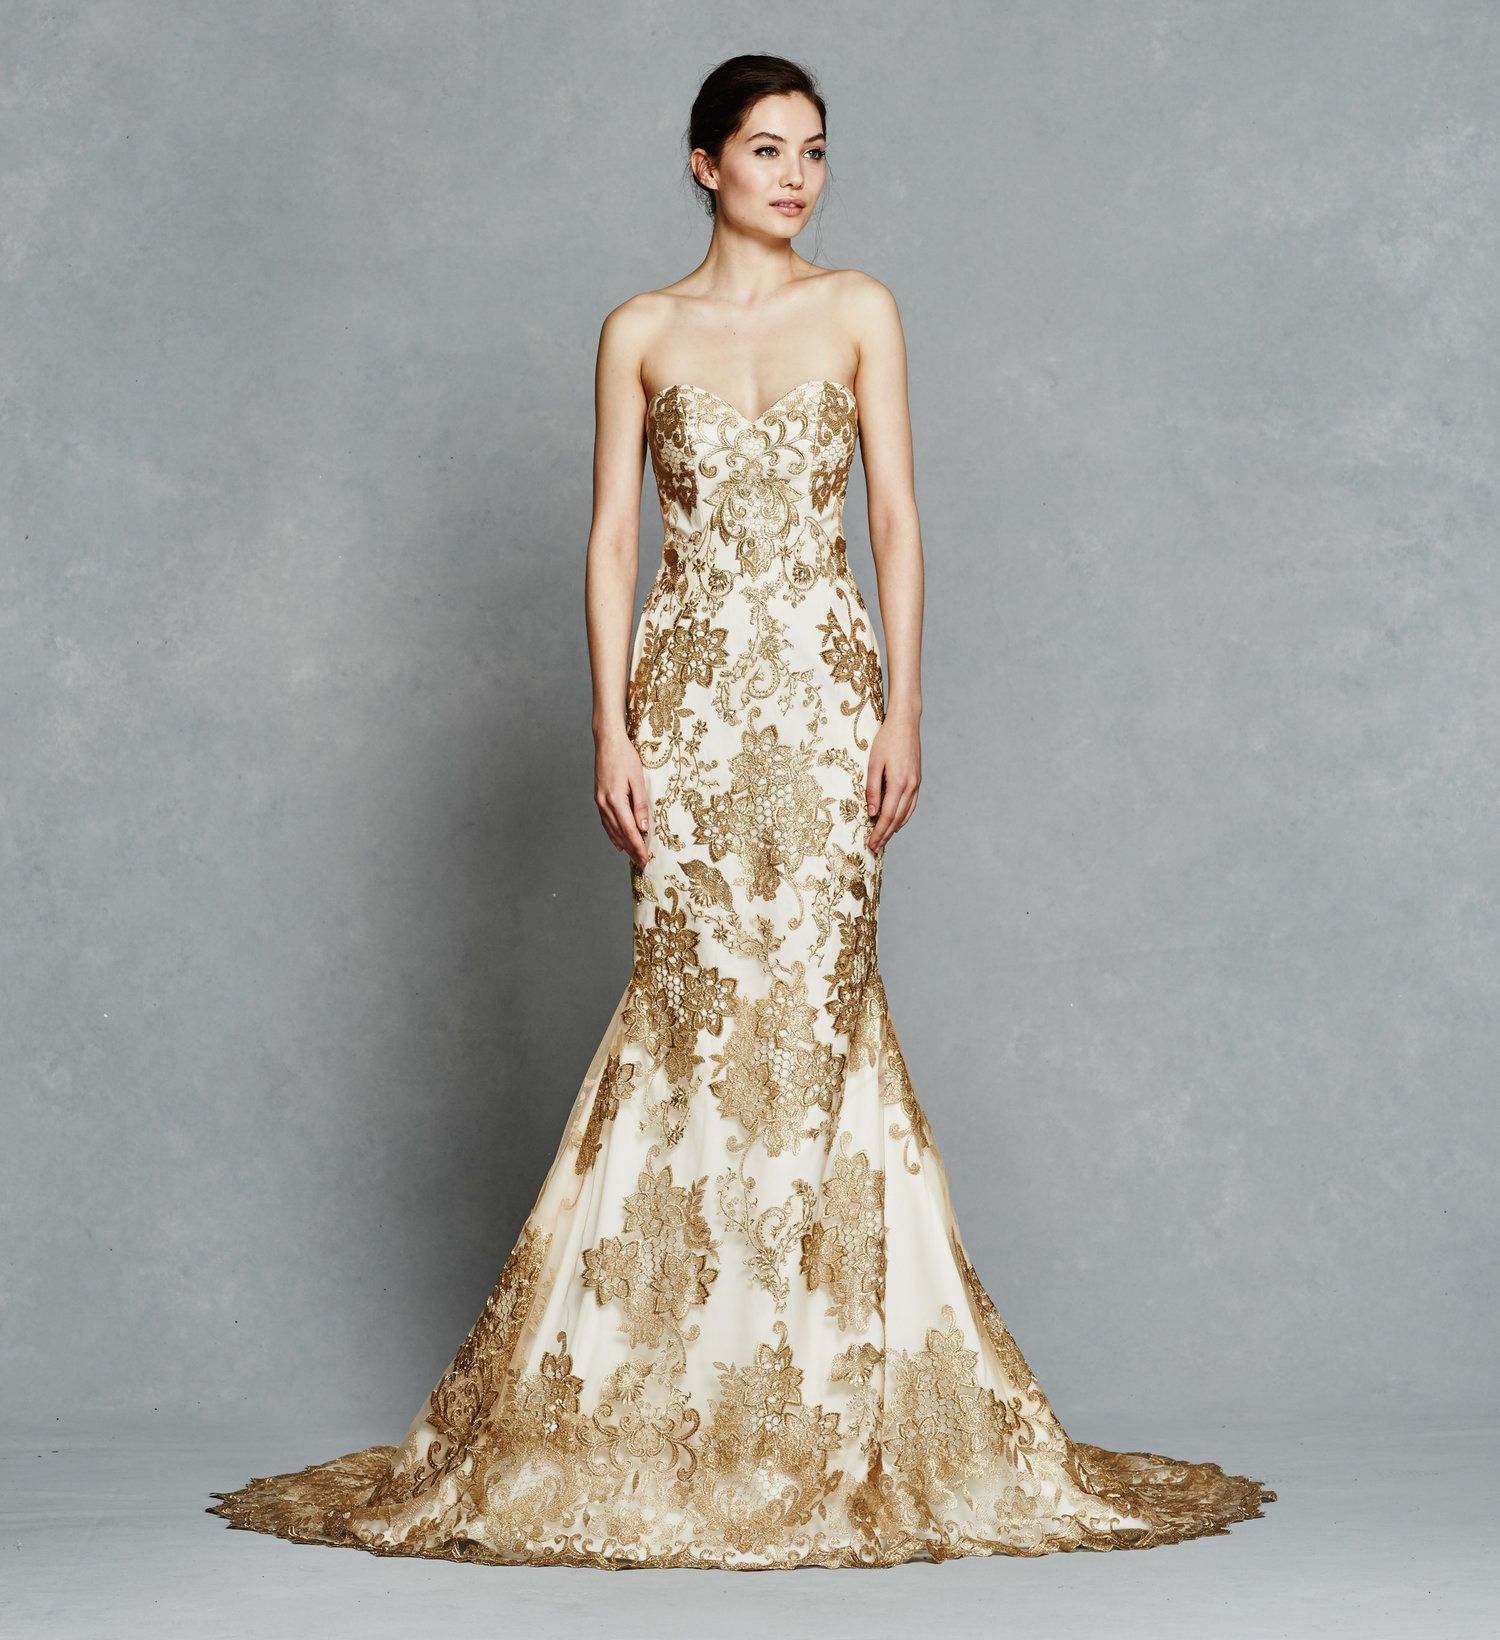 Gold embroidery strapless fit to flare with illusion back neckline and  detachable gold embroidered skirt.  Locate It